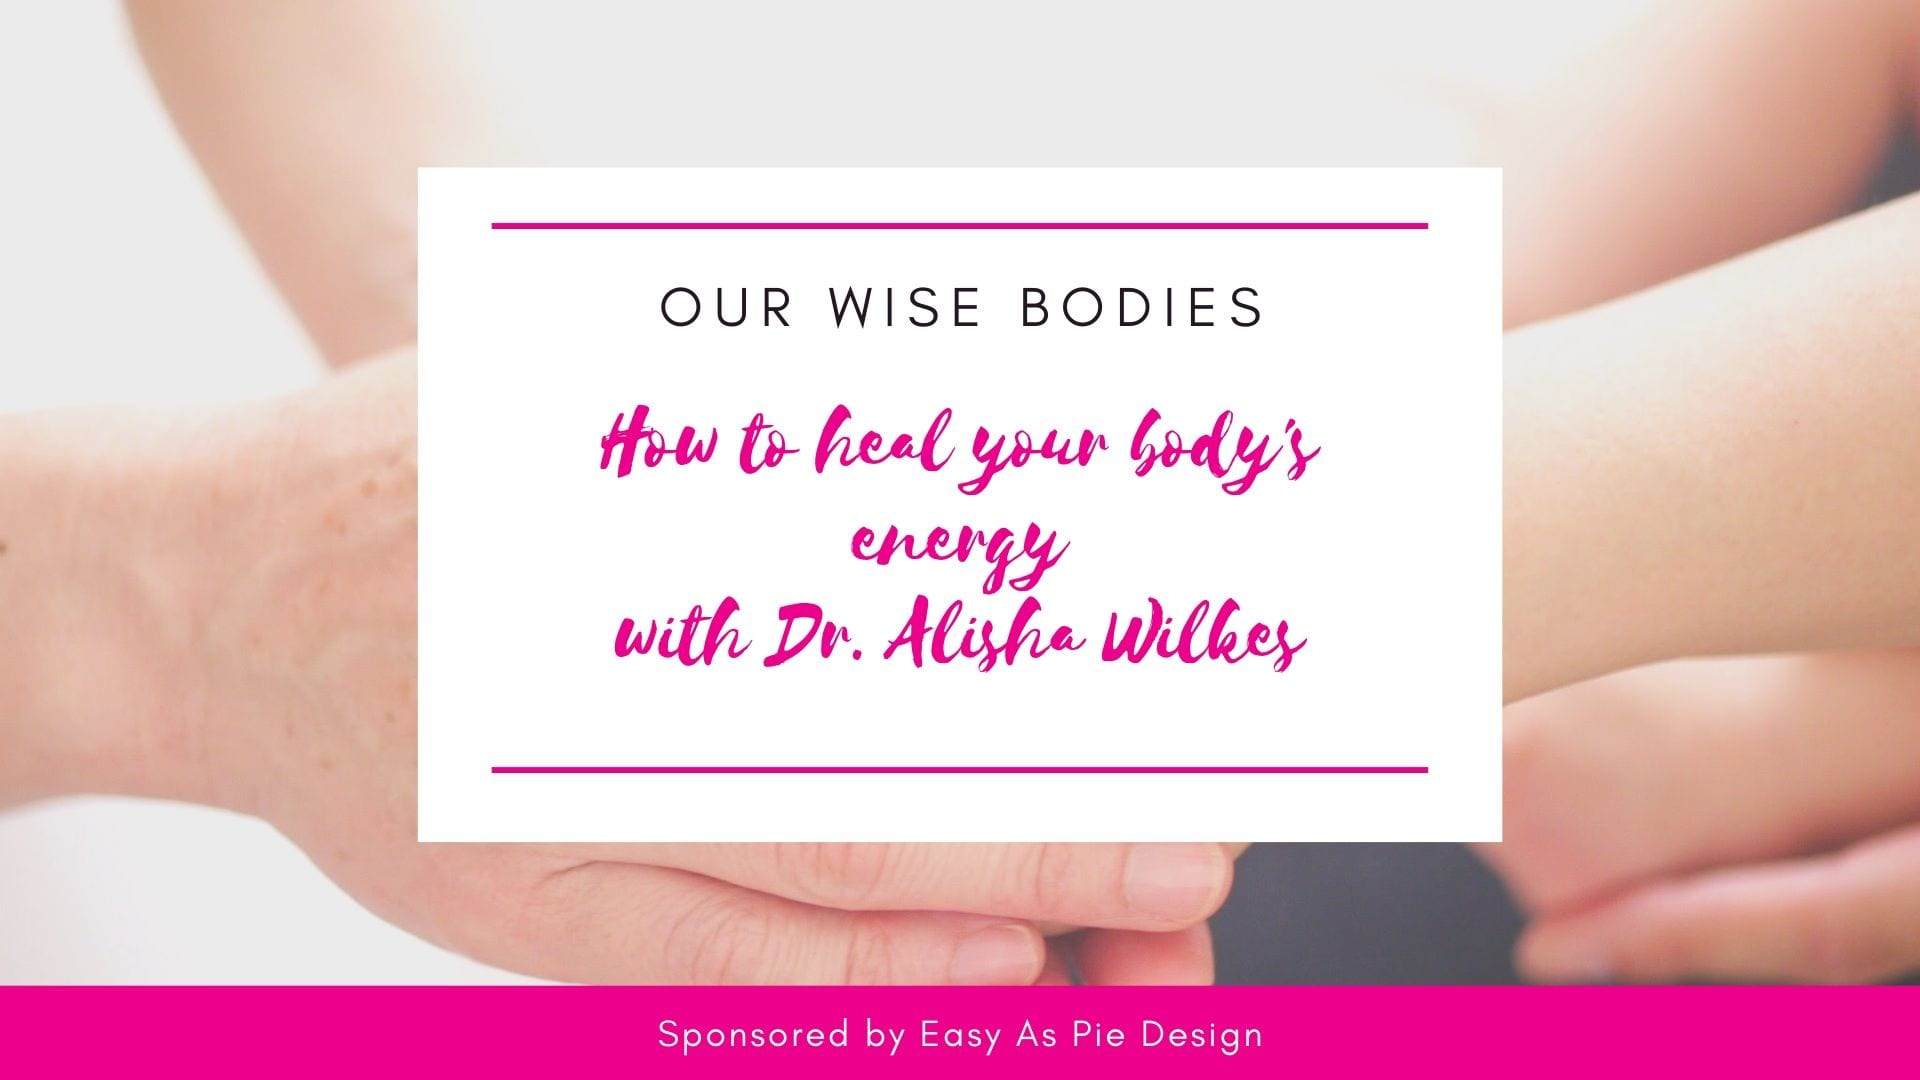 How to heal your body's energy with Dr. Alisha Wilkes